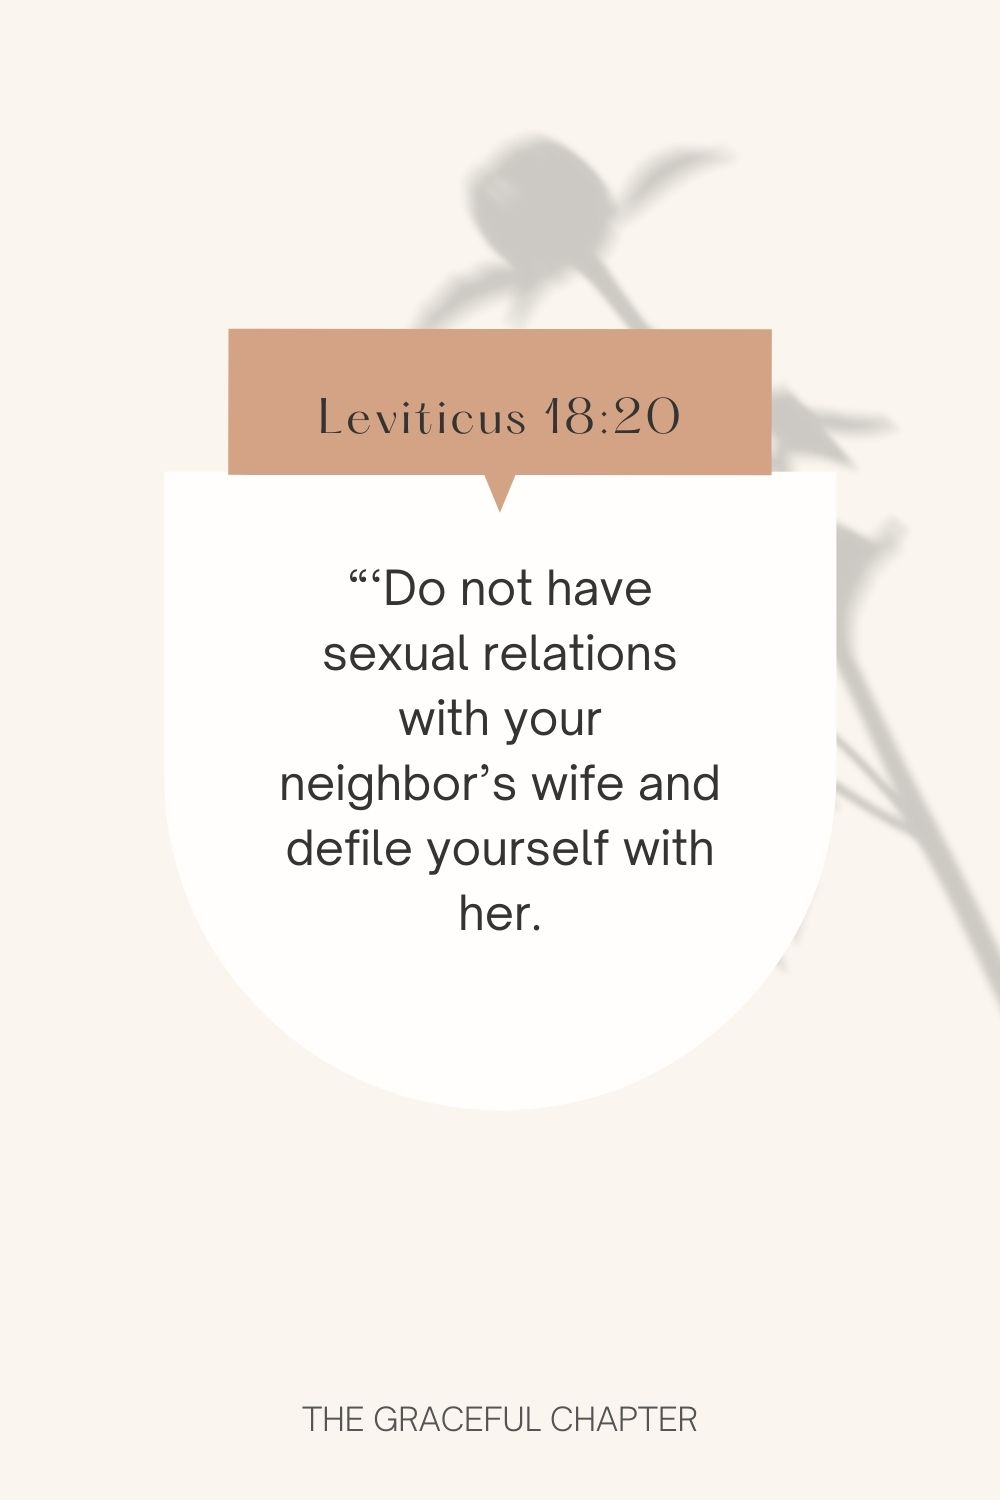 Do not have sexual relations with your neighbor's wife and defile yourself with her. Leviticus 18:20